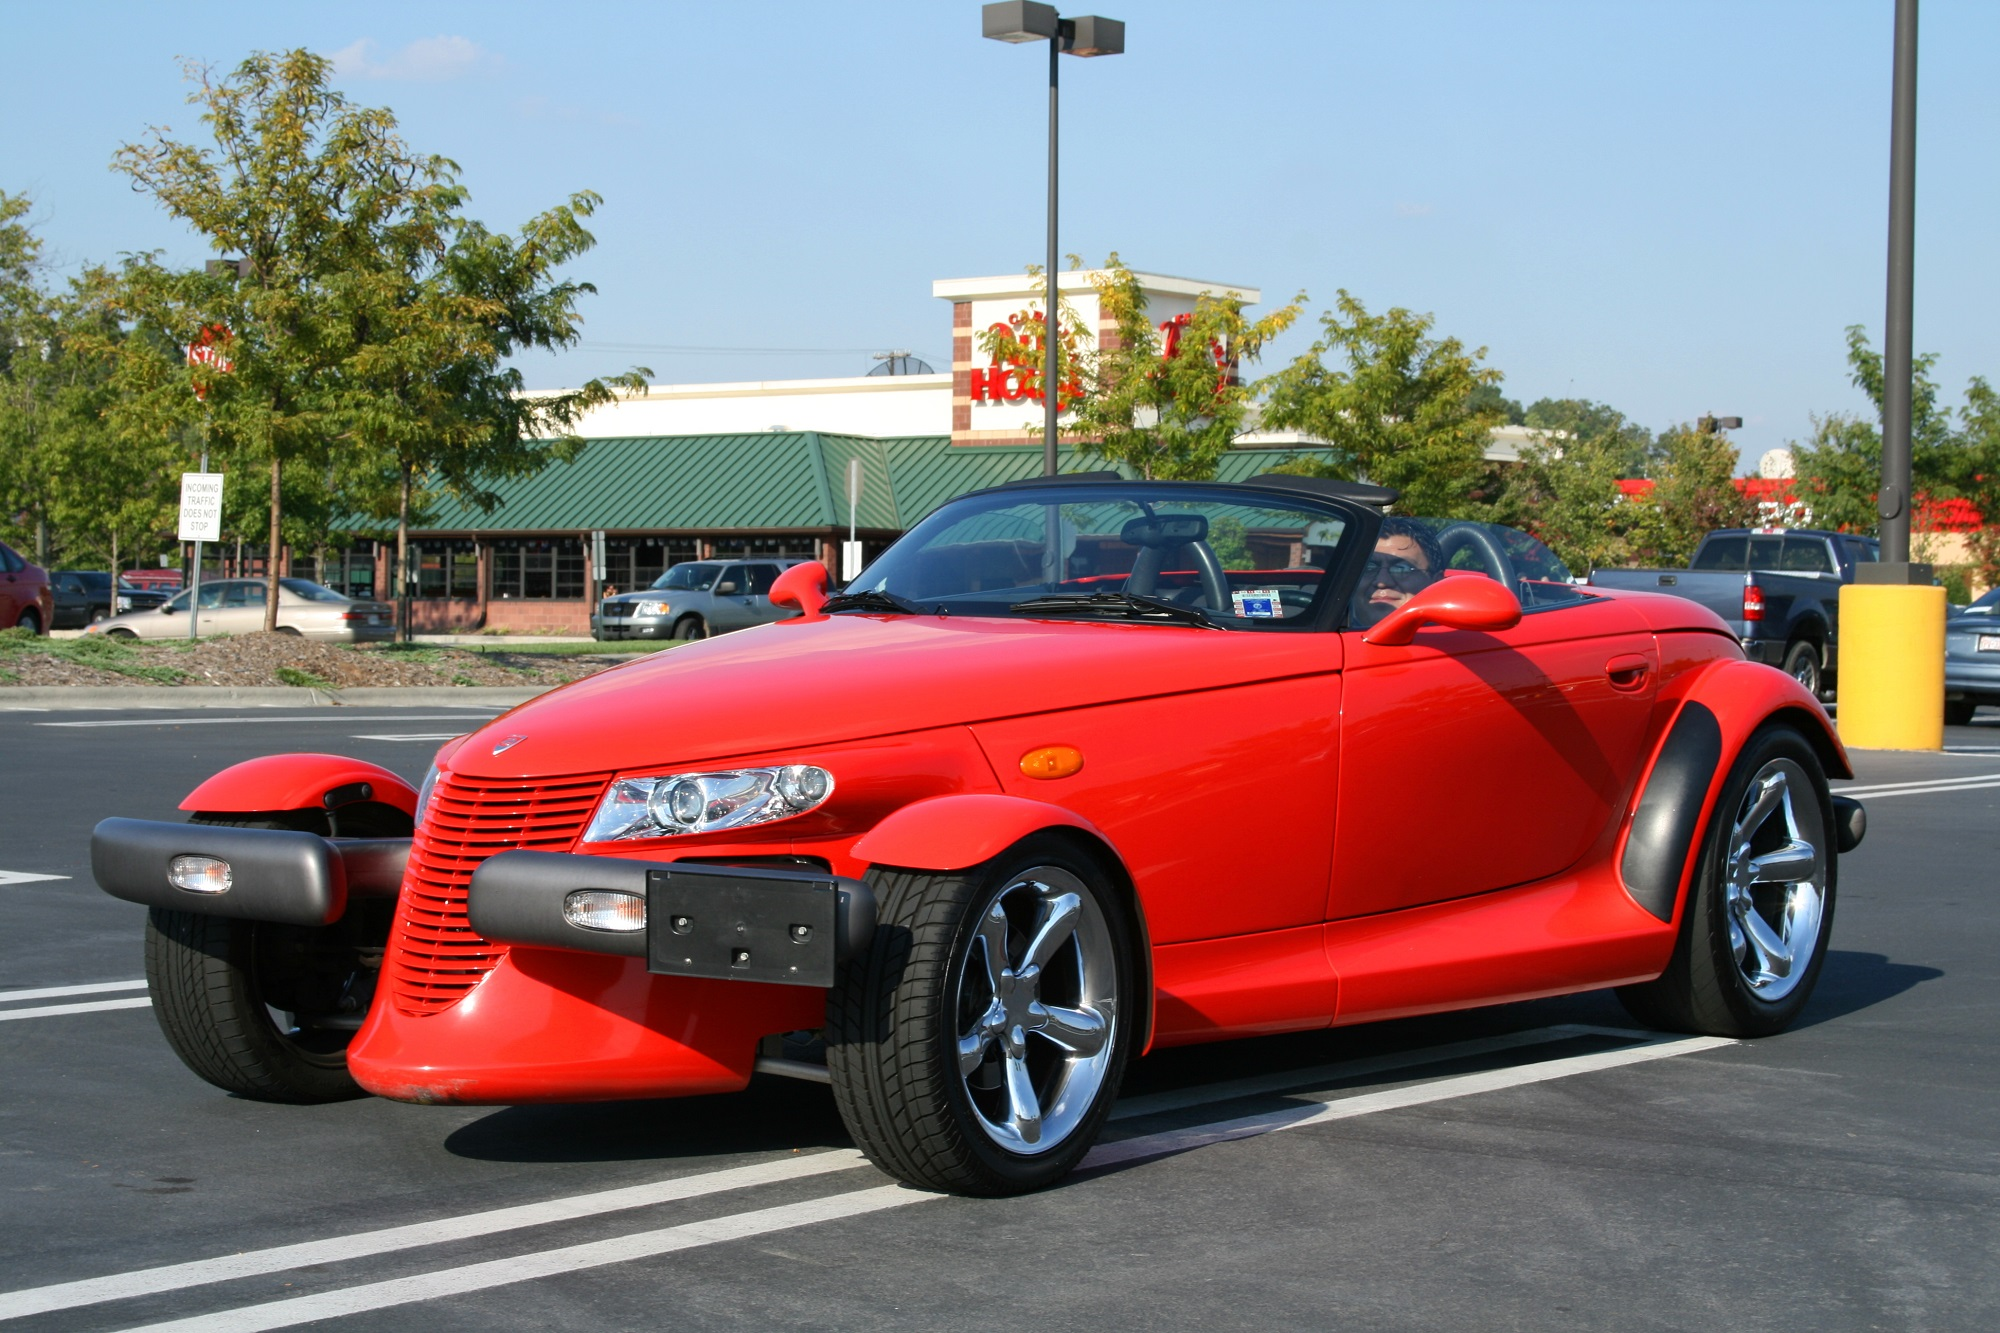 Plymouth Prowler Karl@IsTheIdiot after me misan™ the